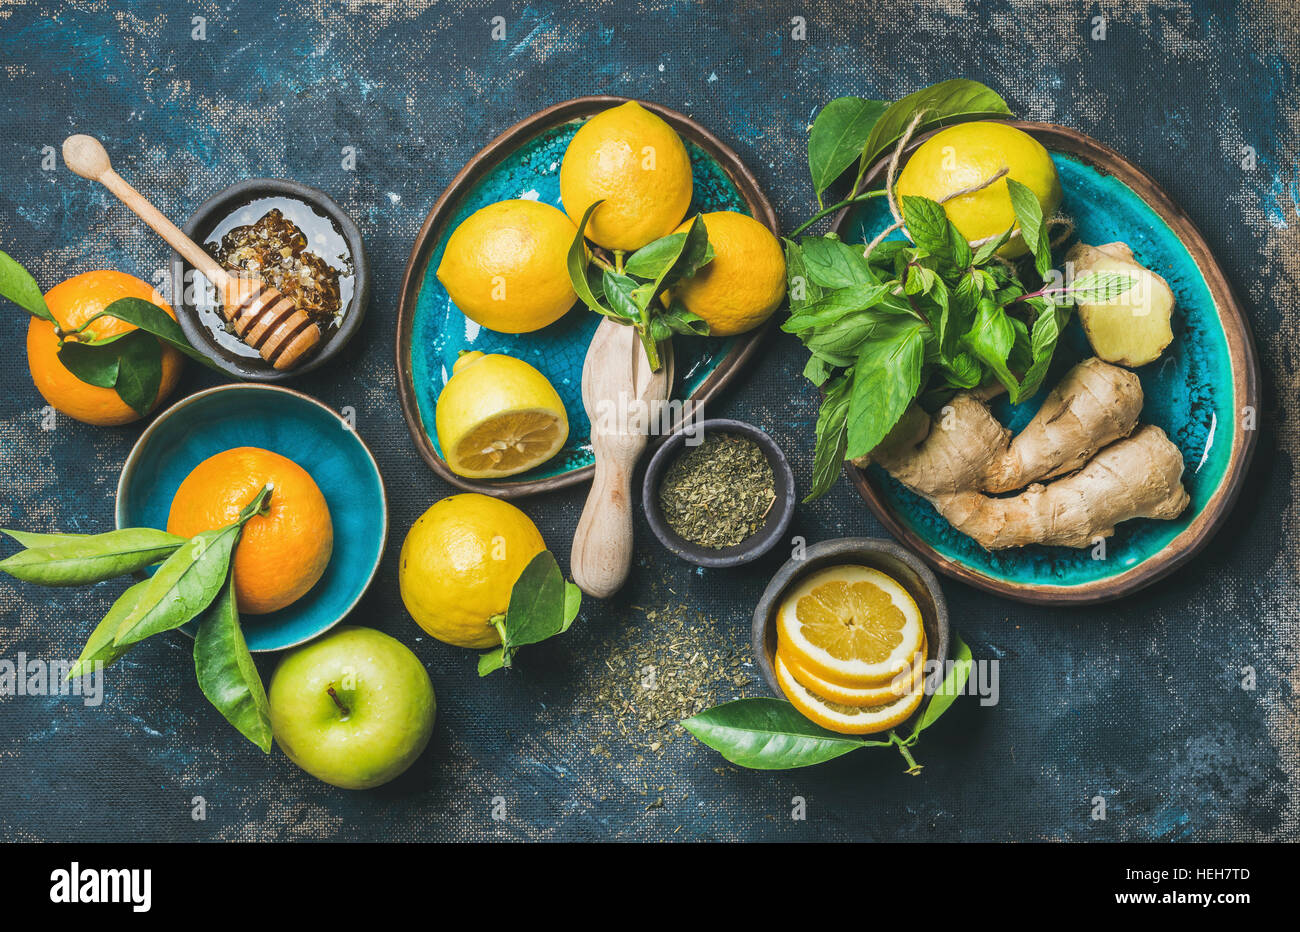 Ingredients for making natural hot drink in blue ceramic plates over dark blue shabby background, top view. Oranges, - Stock Image